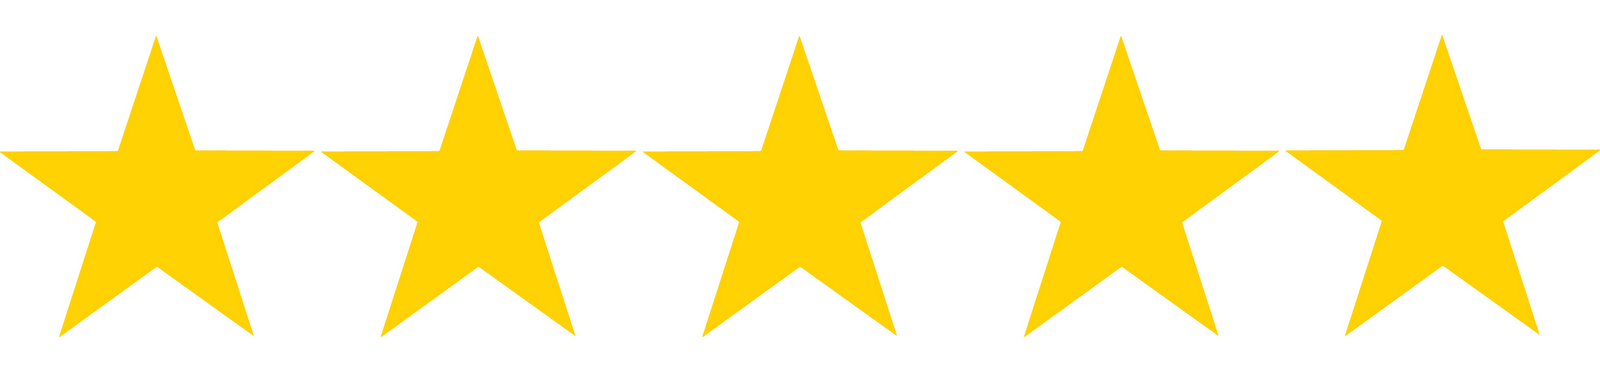 review clipart 5 star